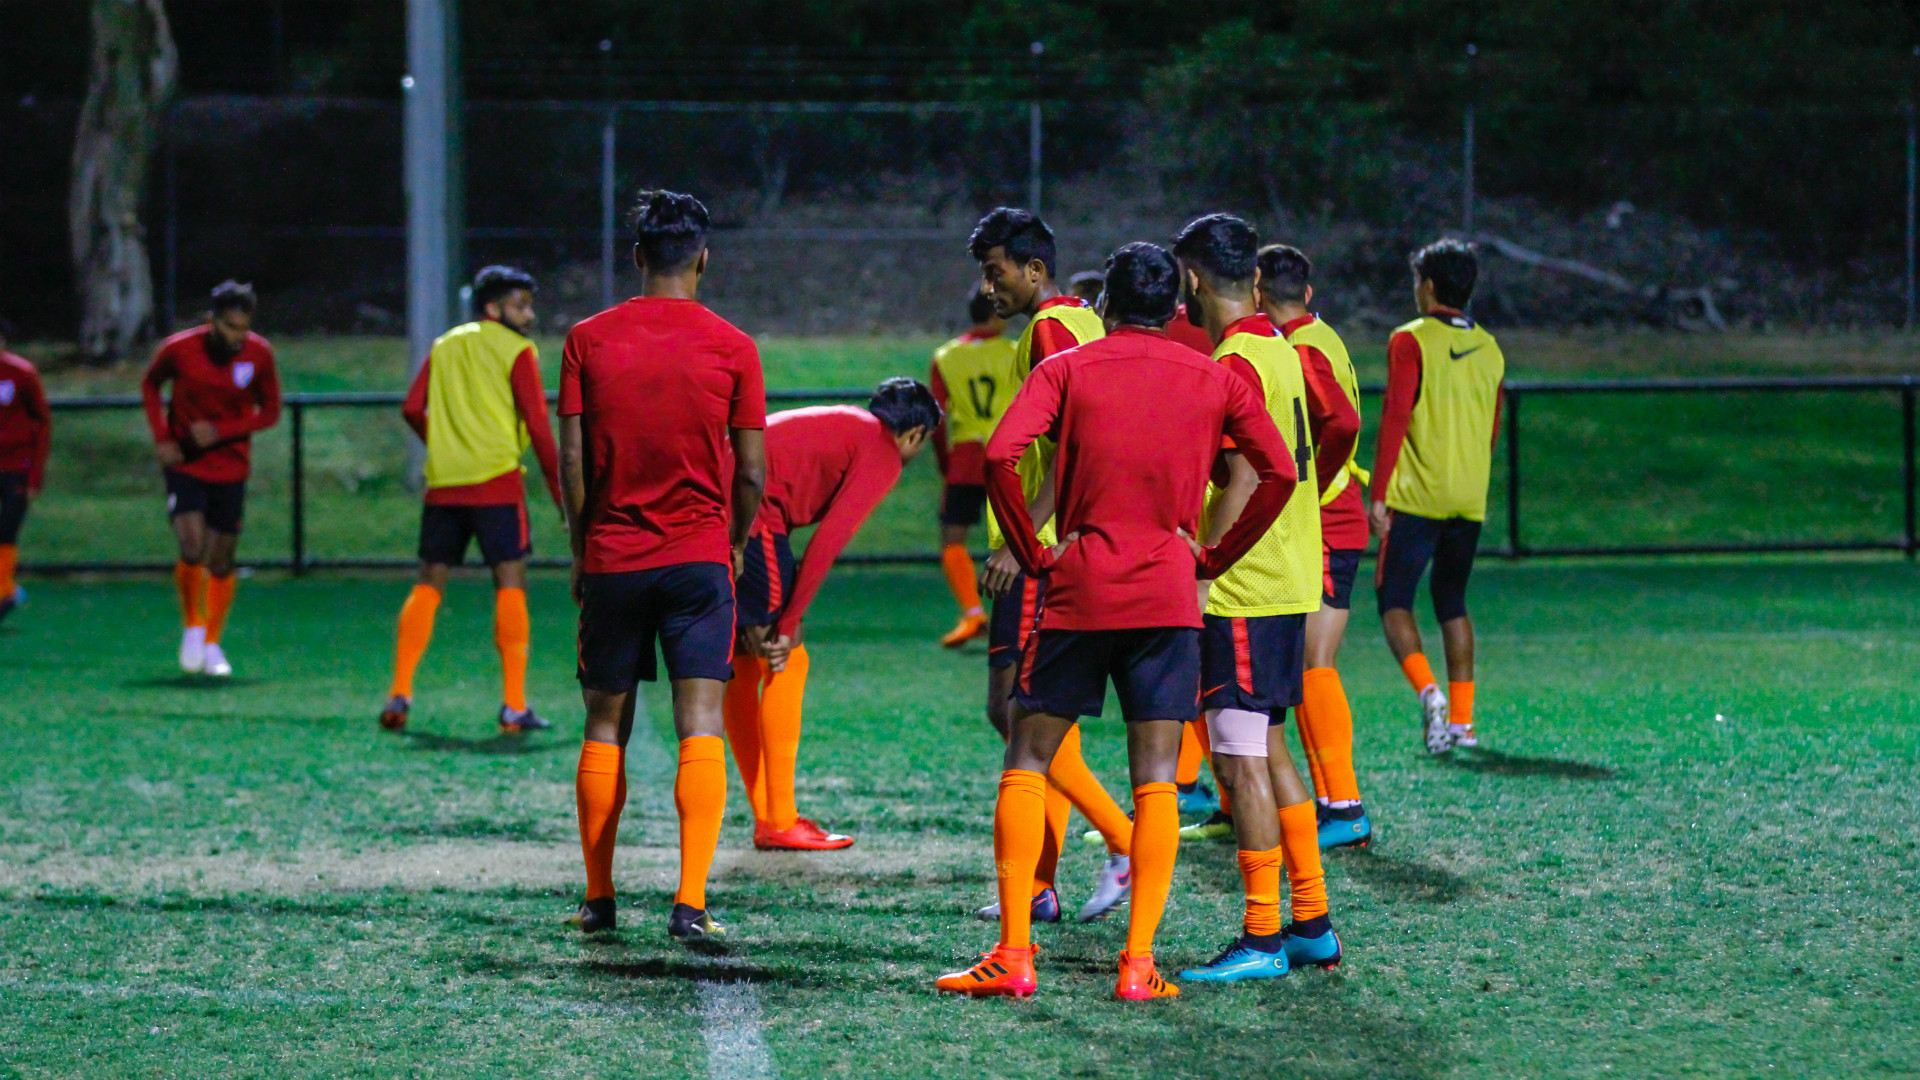 Indian national team training in Australia